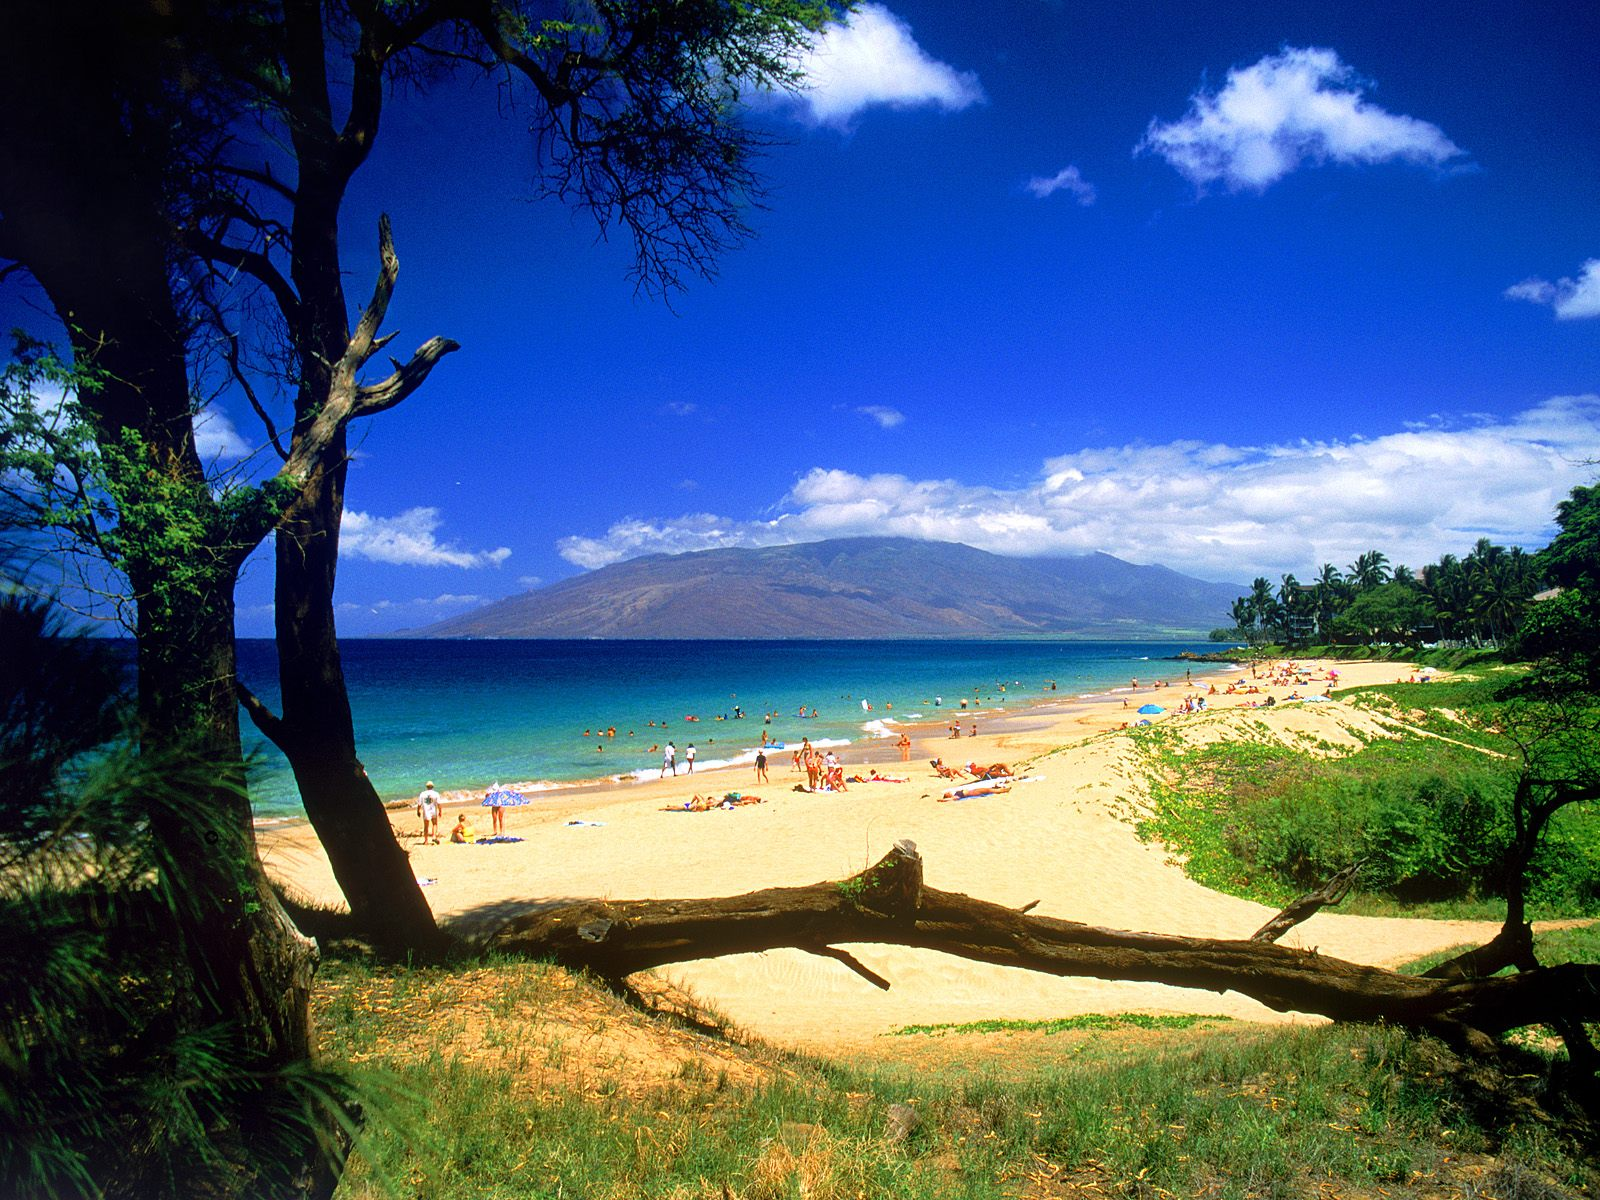 free HD Summer wallpaper collection Here you can find Summer desktop 1600x1200